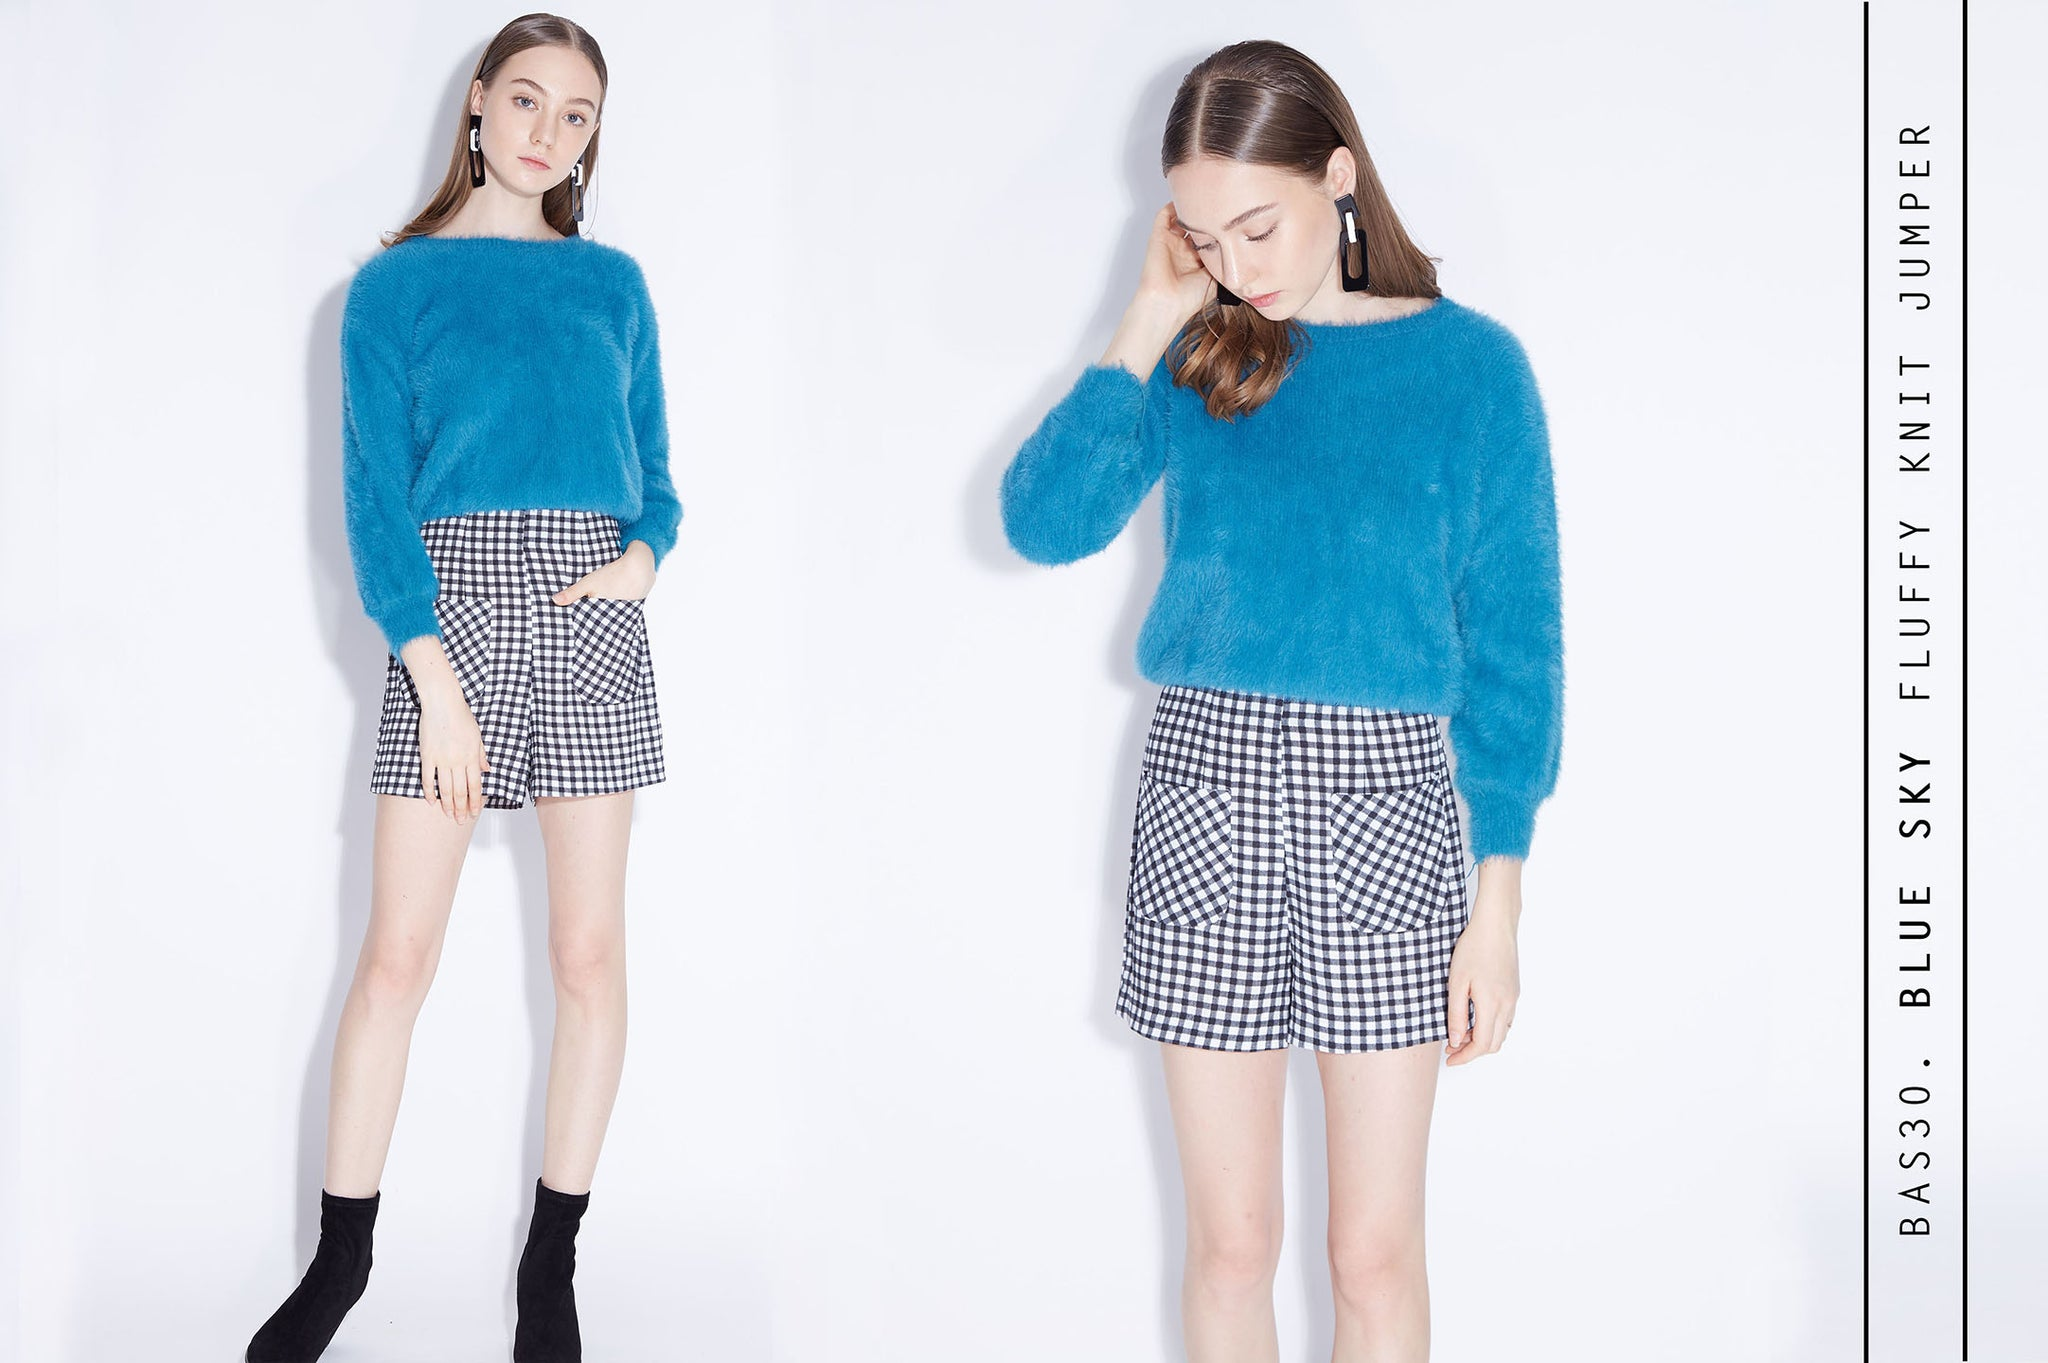 BLUE SKY Fluffy Knit Jumpser